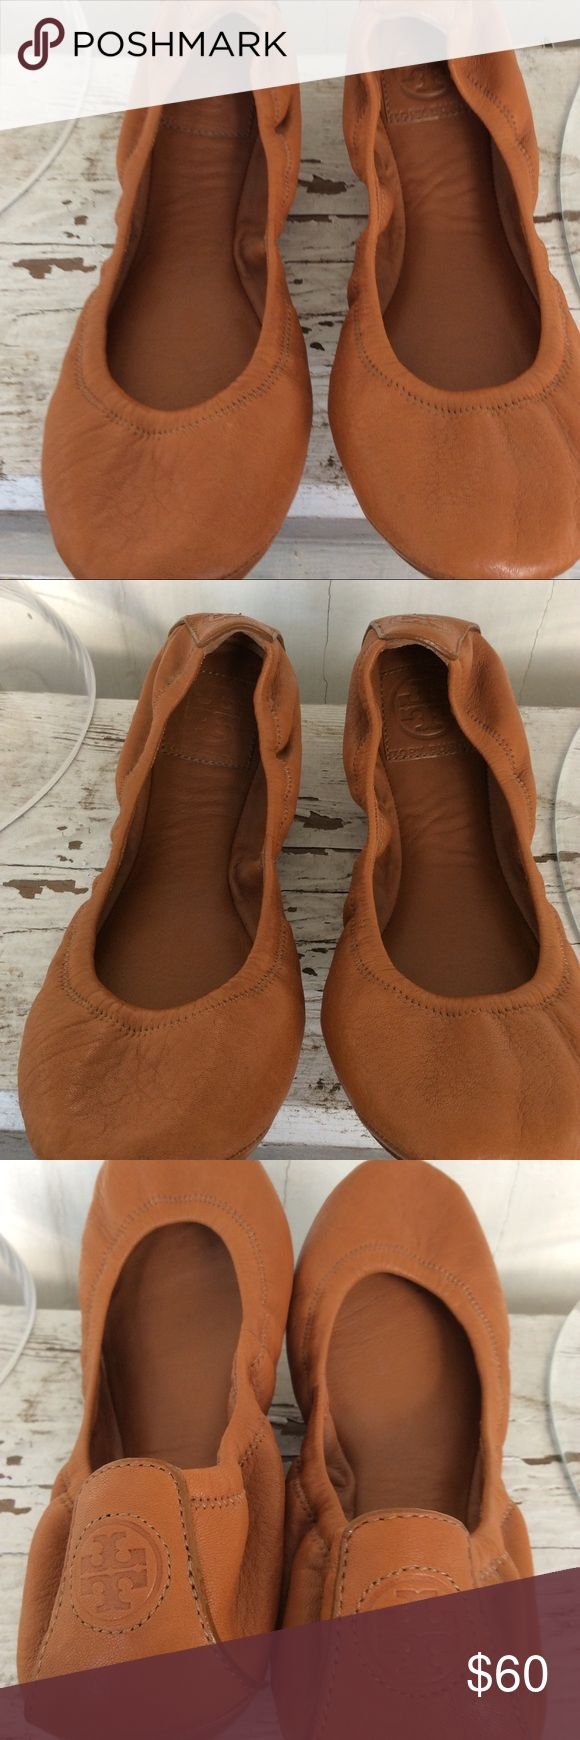 Tory Burch camel leather ballet flat 8.5 Tory Burch leather Camel ballet flat 8.5 Tory Burch Shoes Flats & Loafers